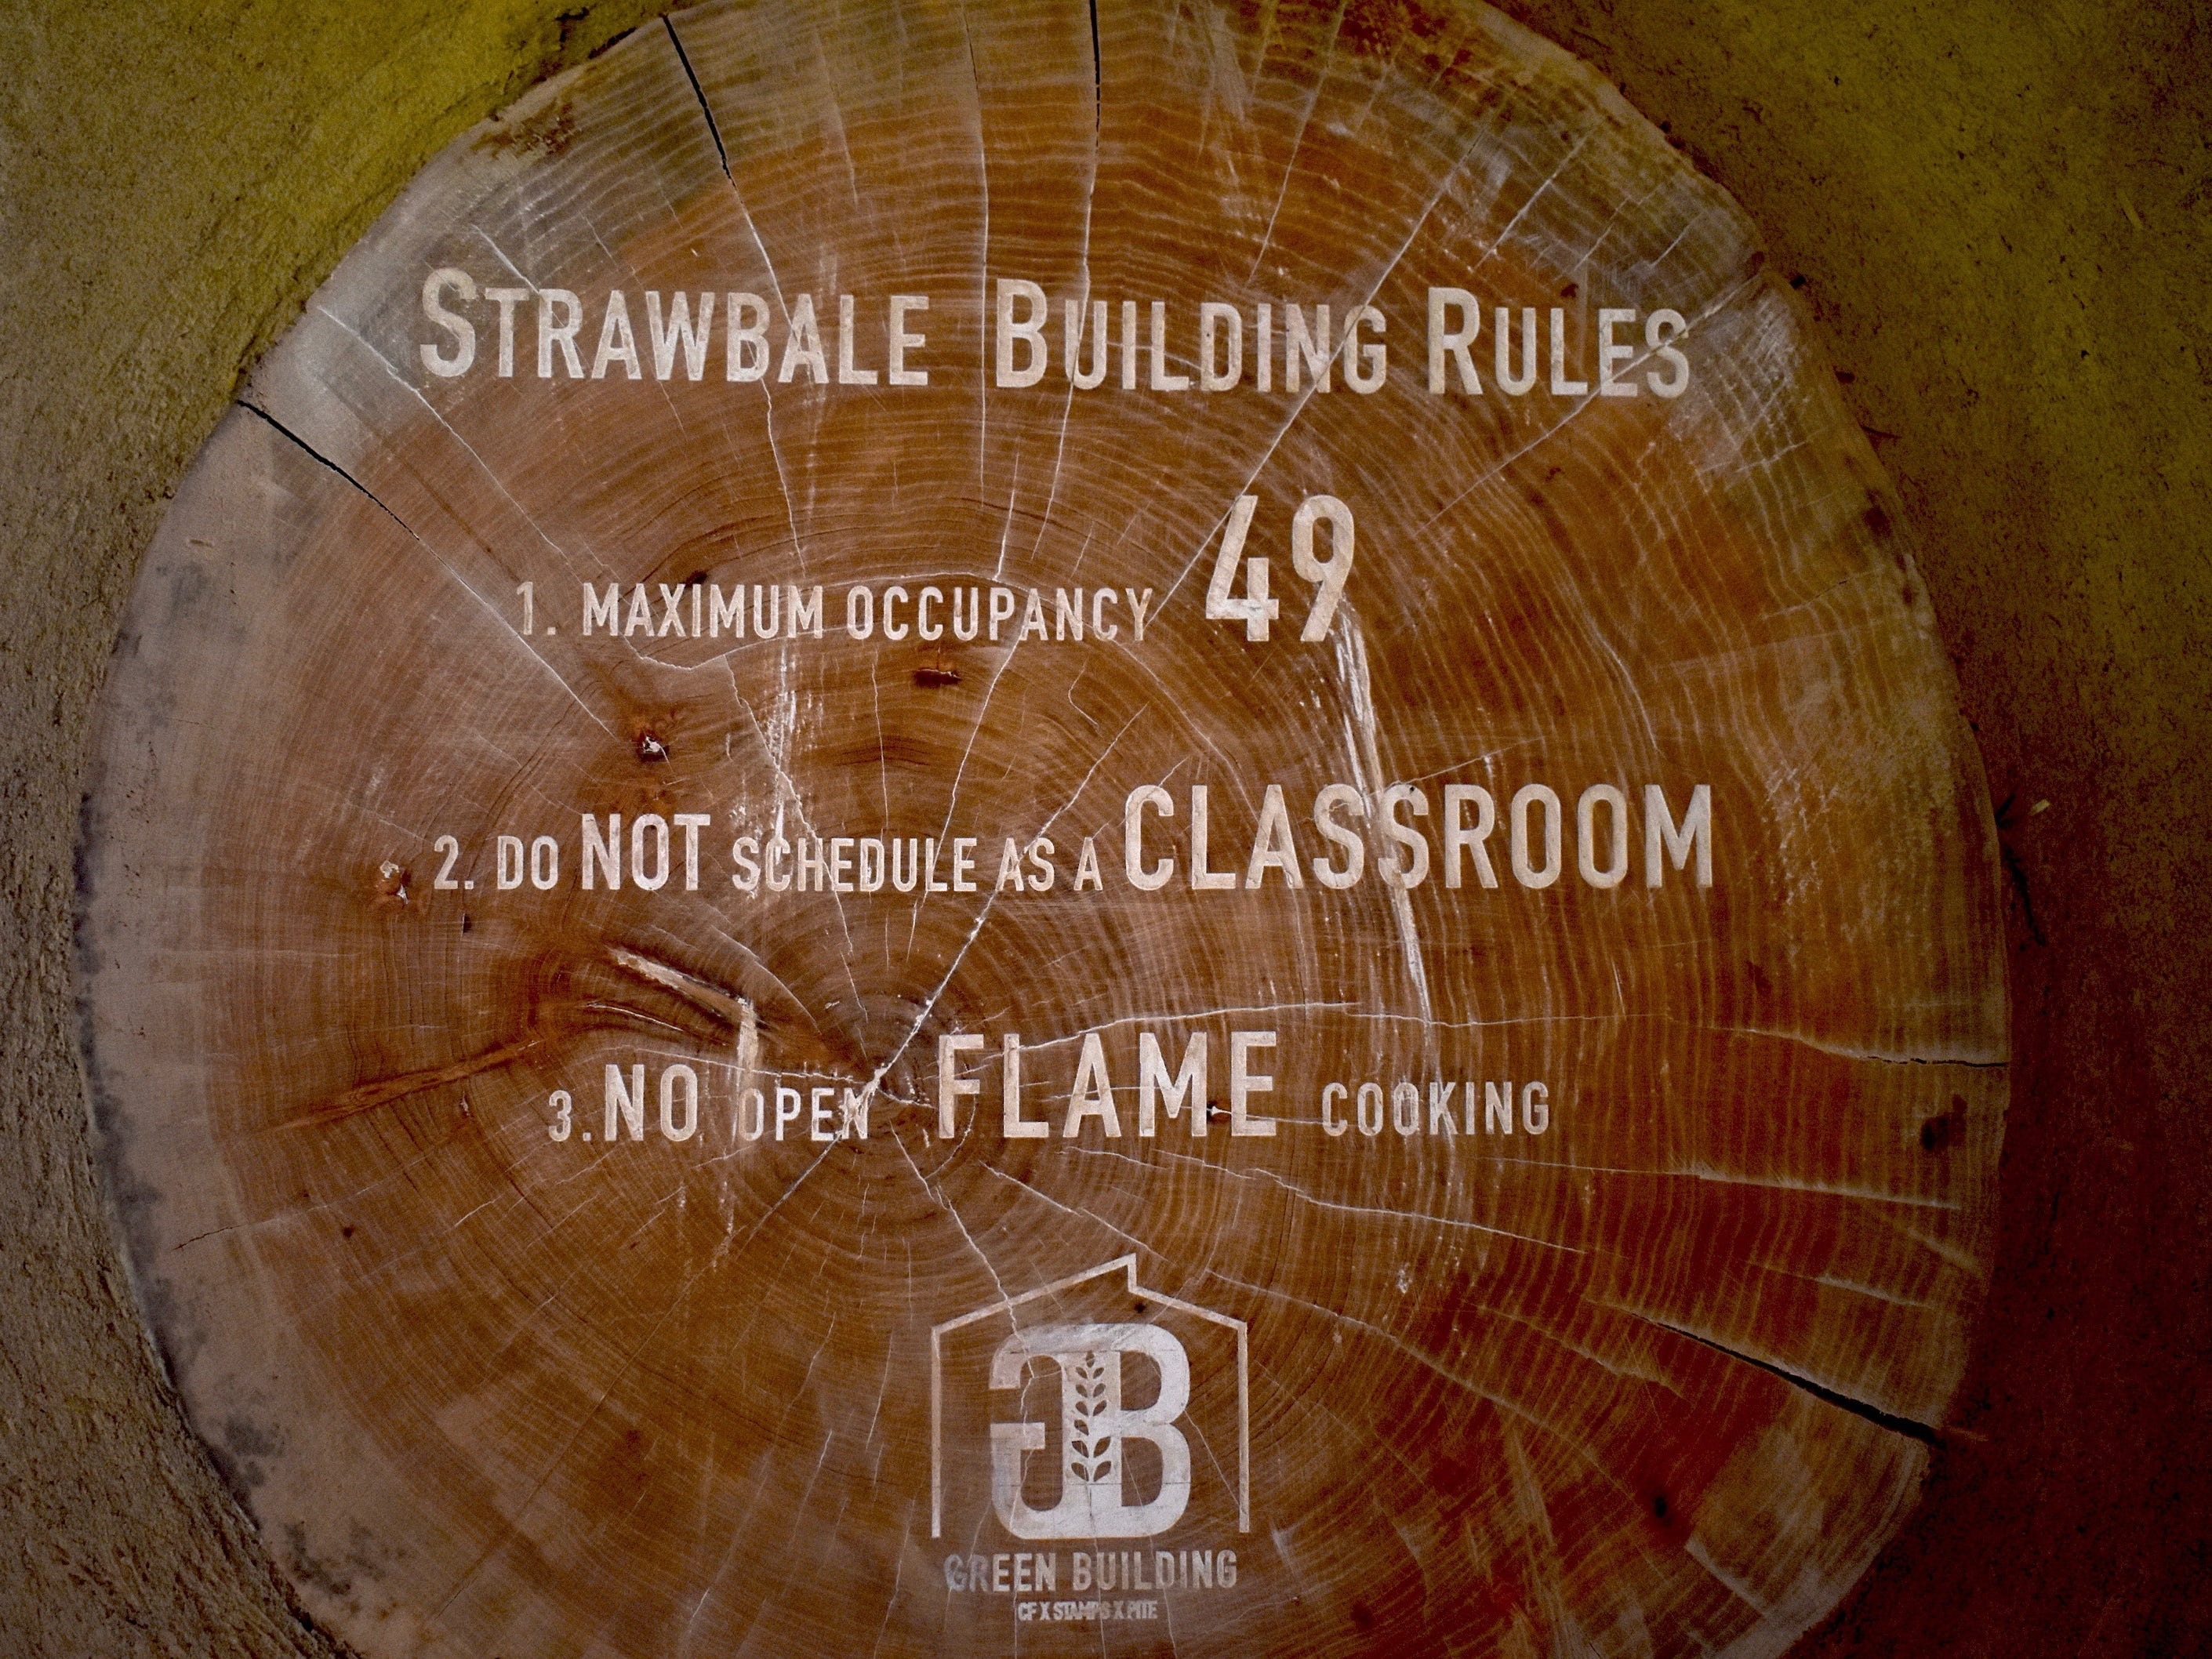 Crafted of natural materials like straw, wood, sand, and clay, the Straw Bale Building boasts informational plaques that are carved into tree slices.